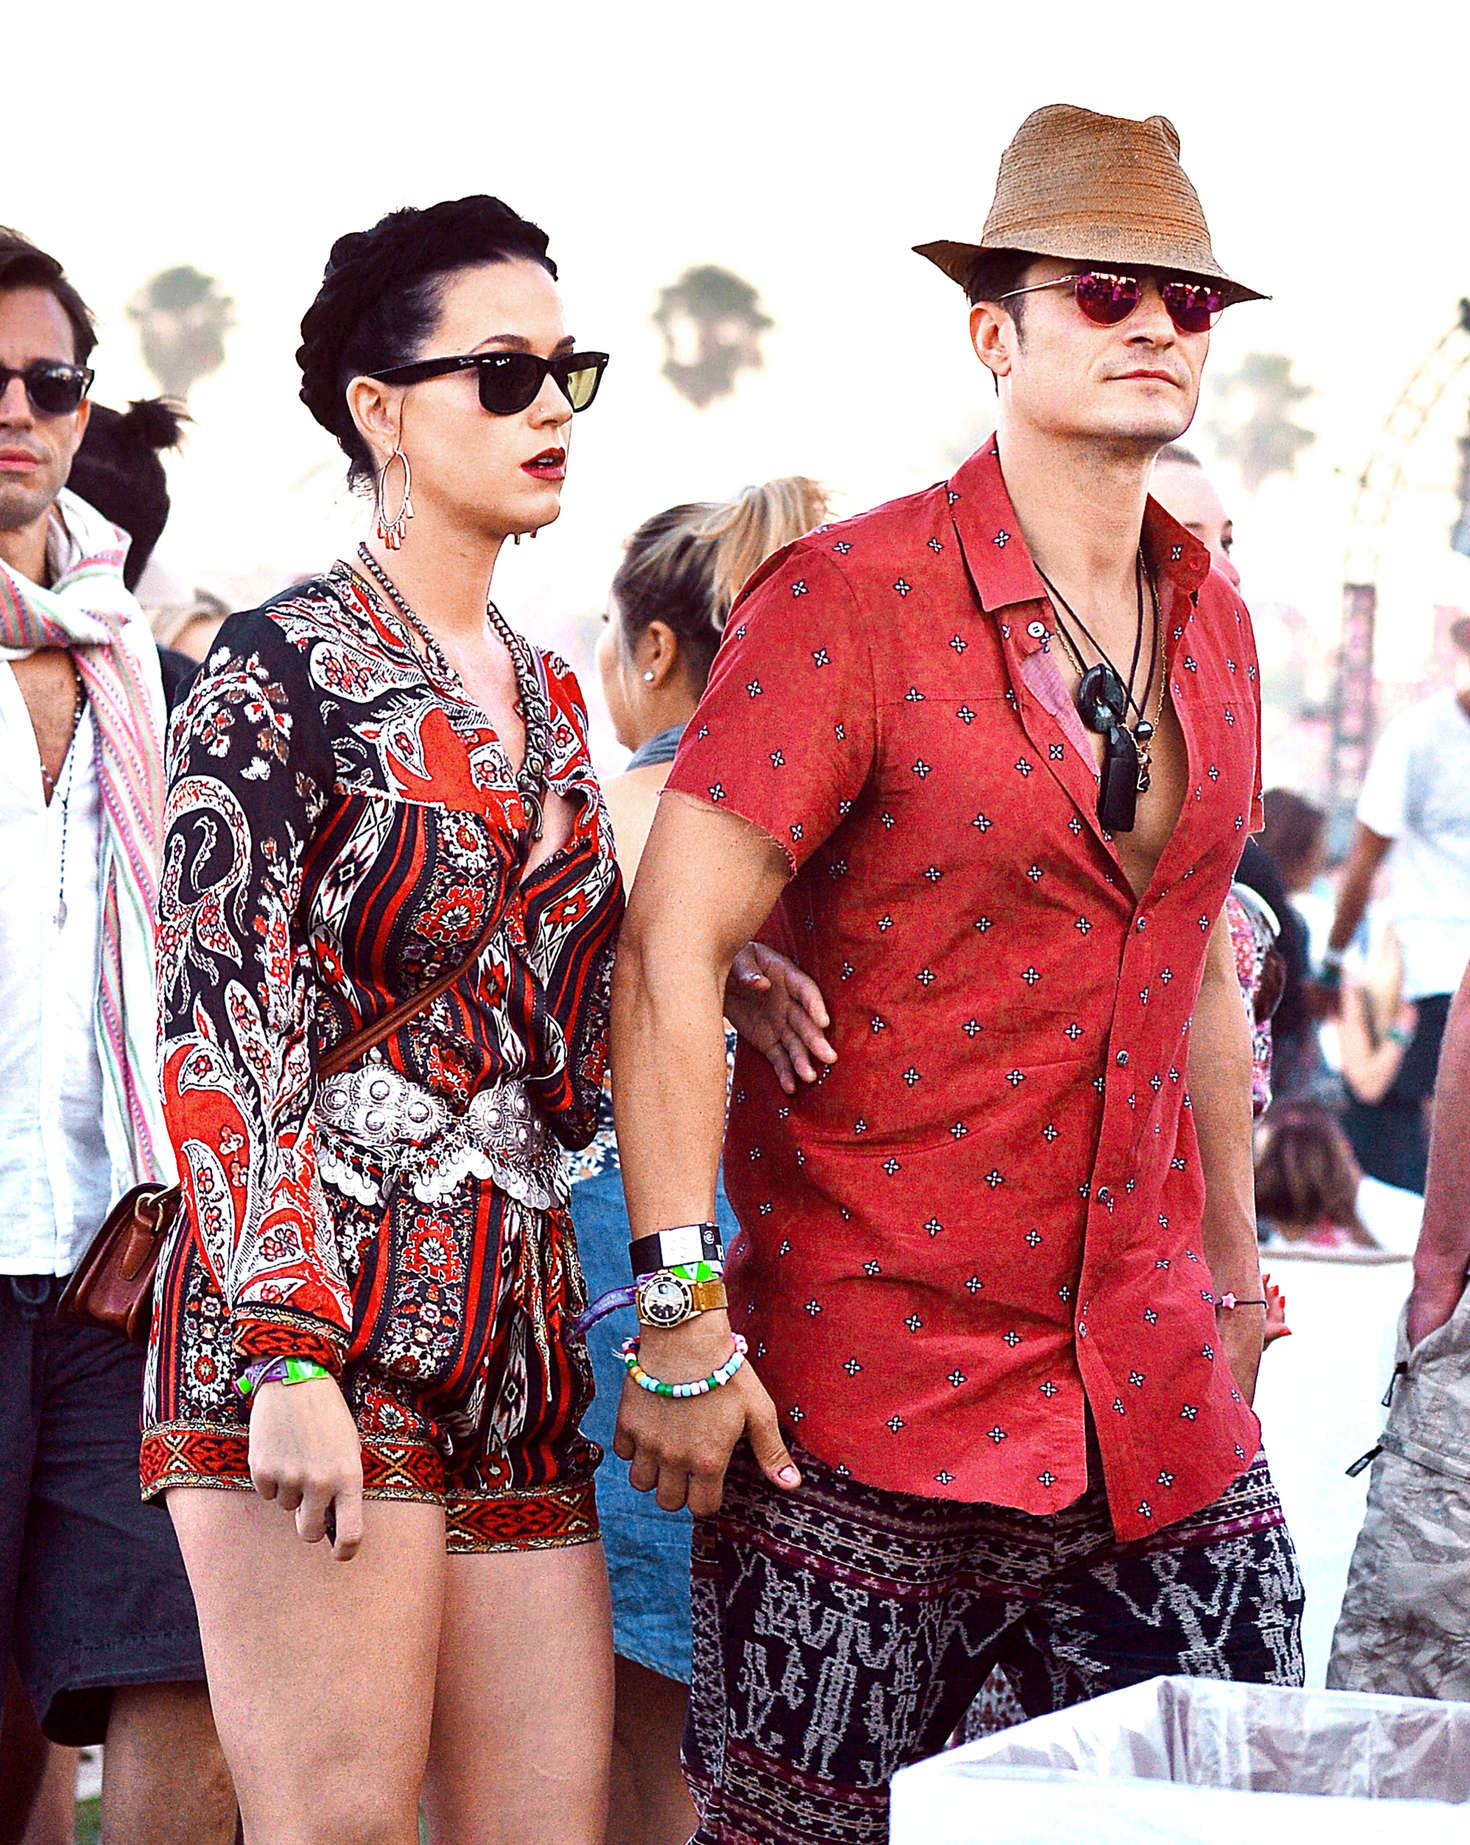 Katy Perry and Orlando Bloom Coachella 2016 day 3  02 1470x1845